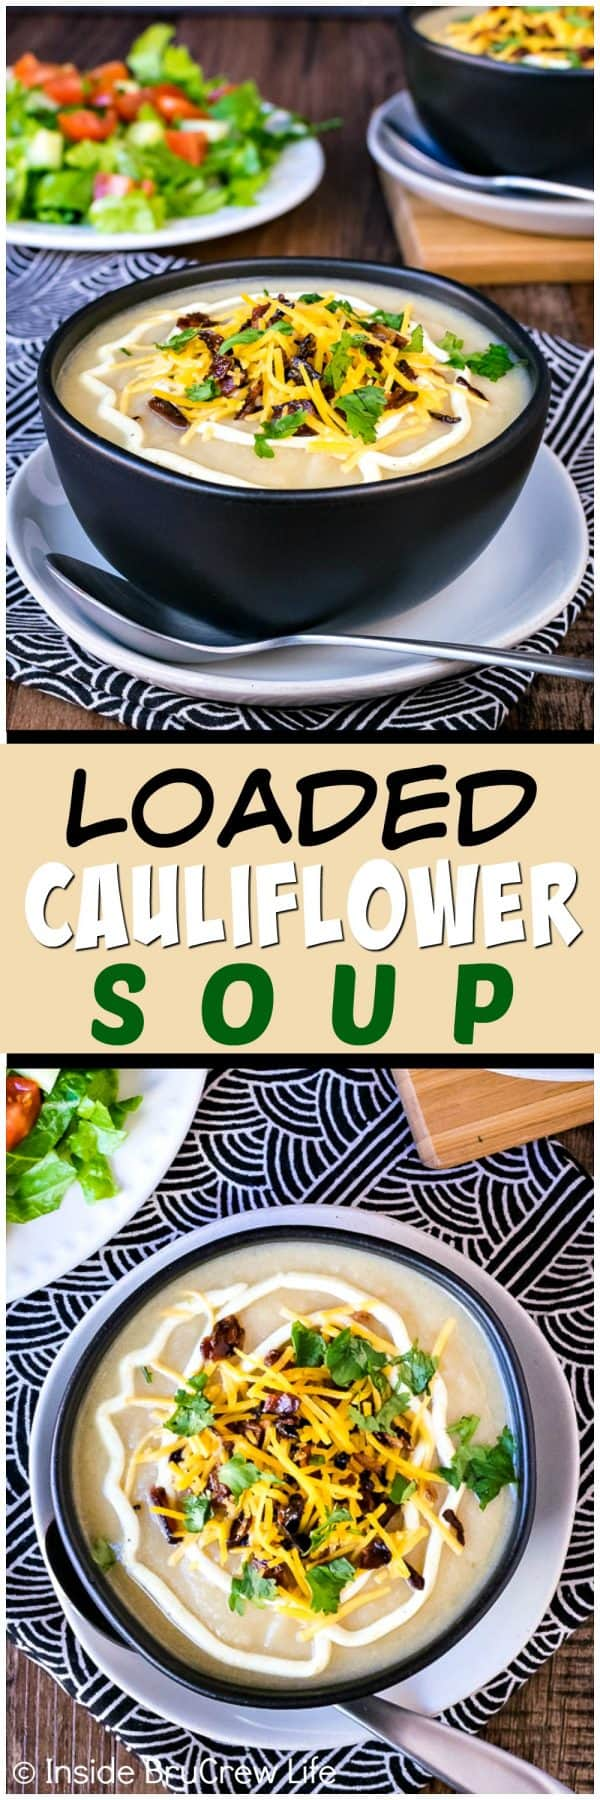 Loaded Cauliflower Soup - this easy soup is full of veggies and topped with cheese and bacon. Great healthy recipe that tastes just like comfort food. Perfect for cold nights!